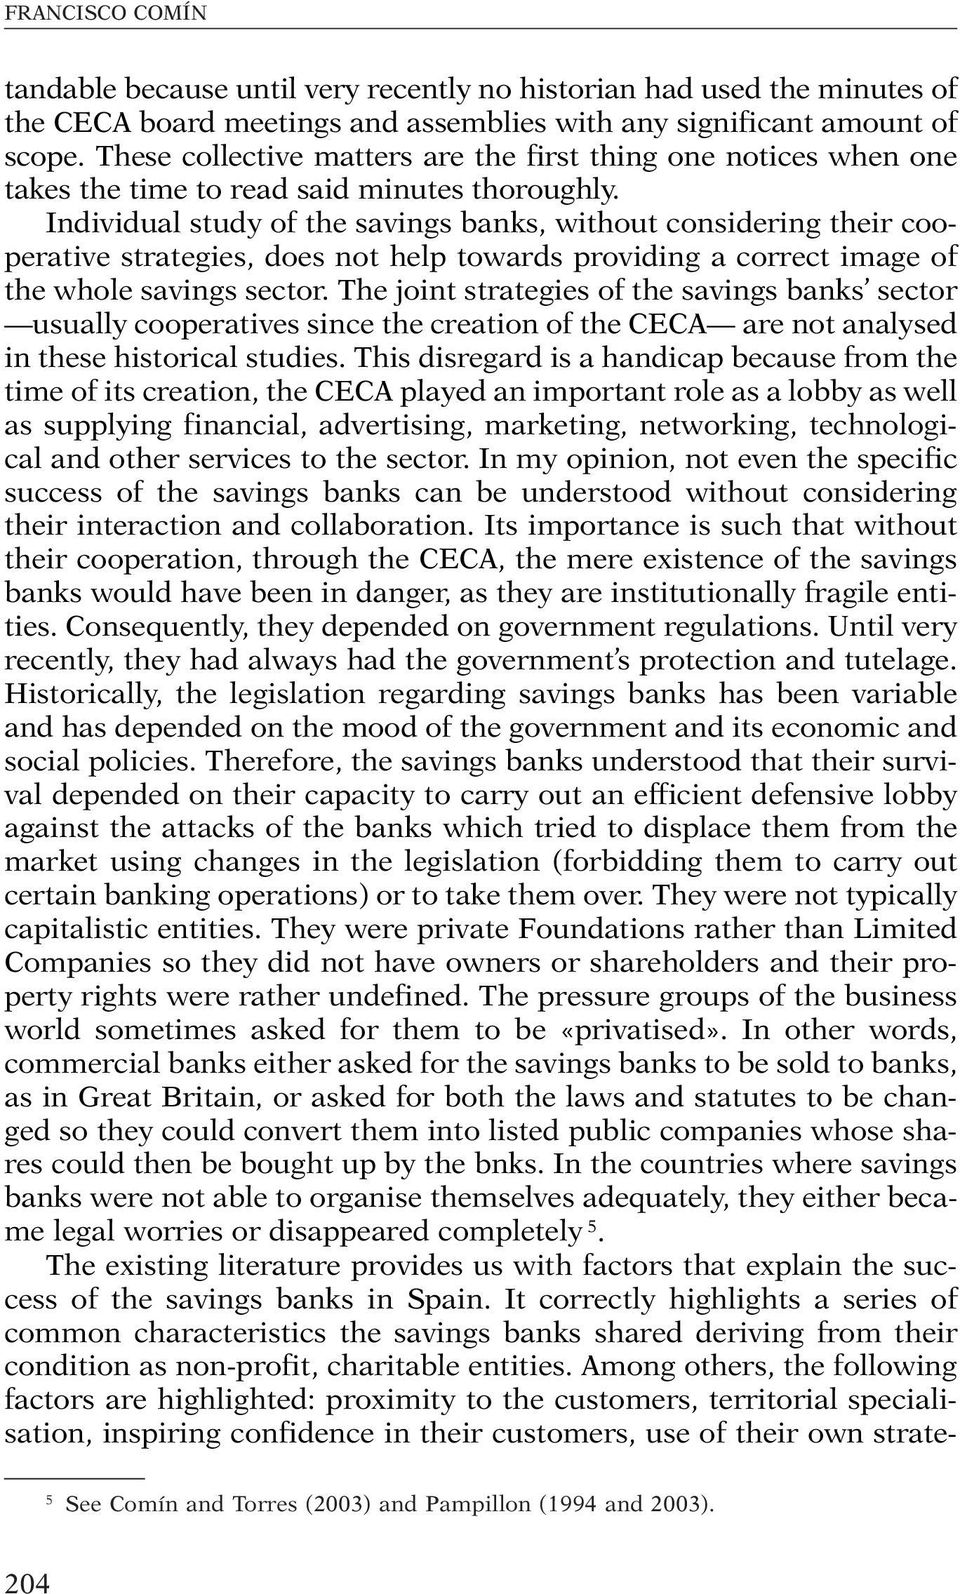 Individual study of the savings banks, without considering their cooperative strategies, does not help towards providing a correct image of the whole savings sector.